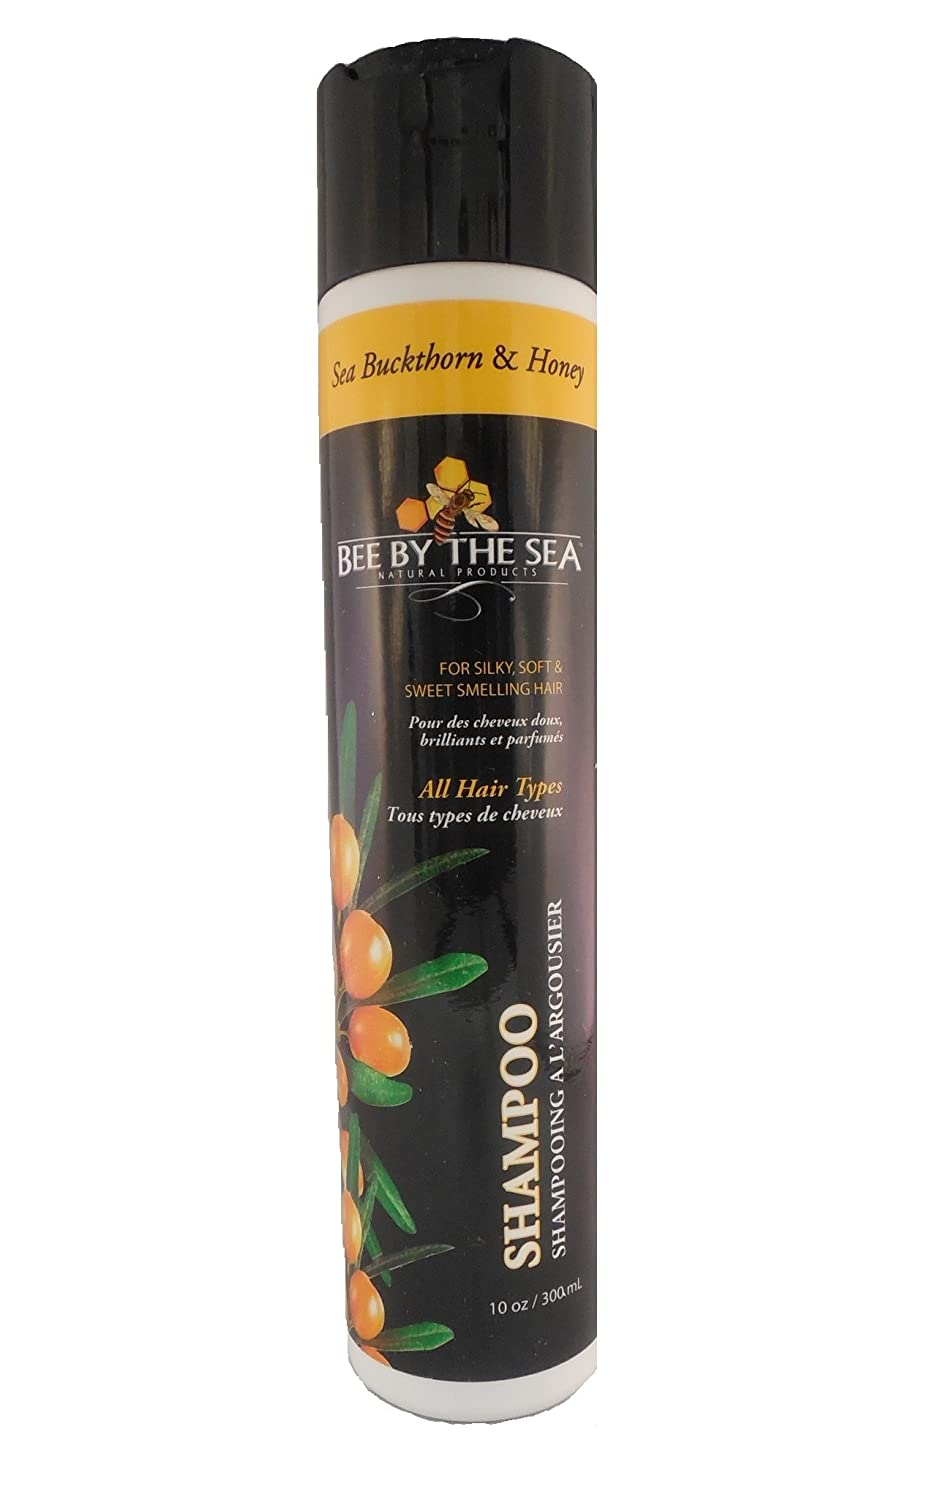 Bee By The Sea's Sea Buckthorn and Honey Shampoo